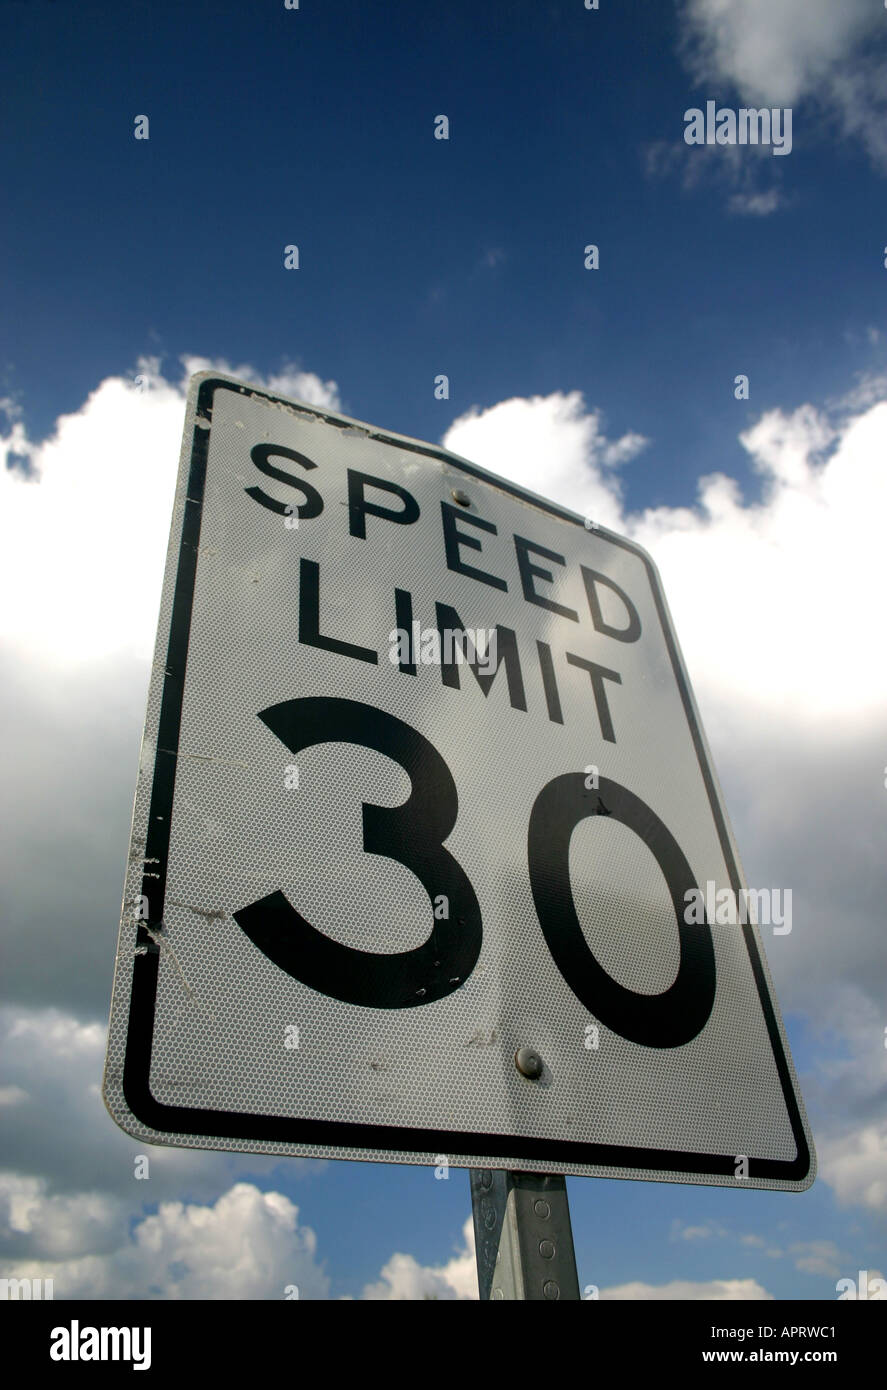 Speed Limit 30 mph warning sign Clearwater Beach Florida United States of America - Stock Image